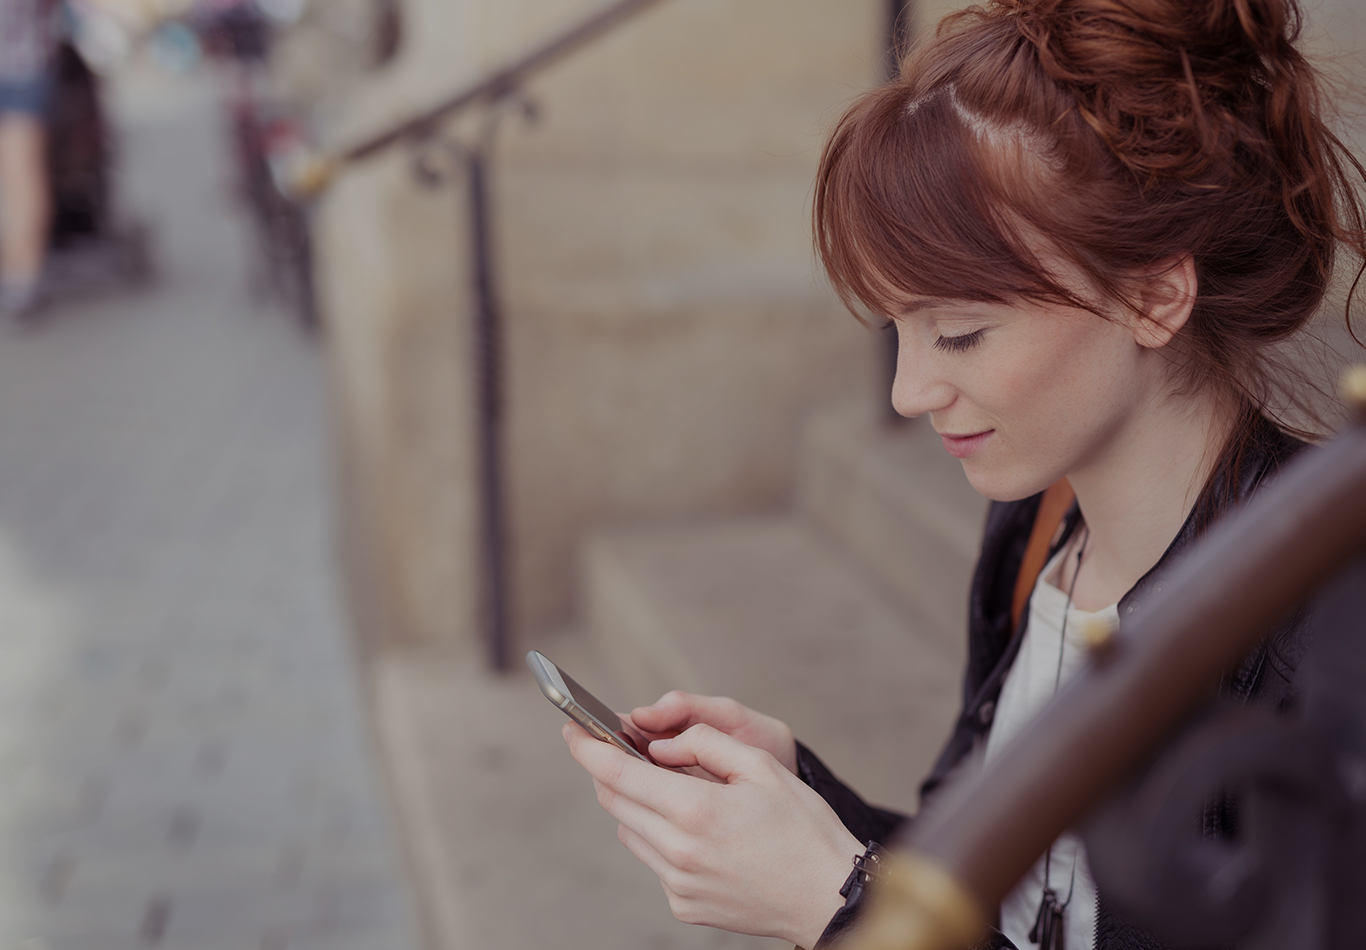 A woman is sitting on the steps looking at her phone